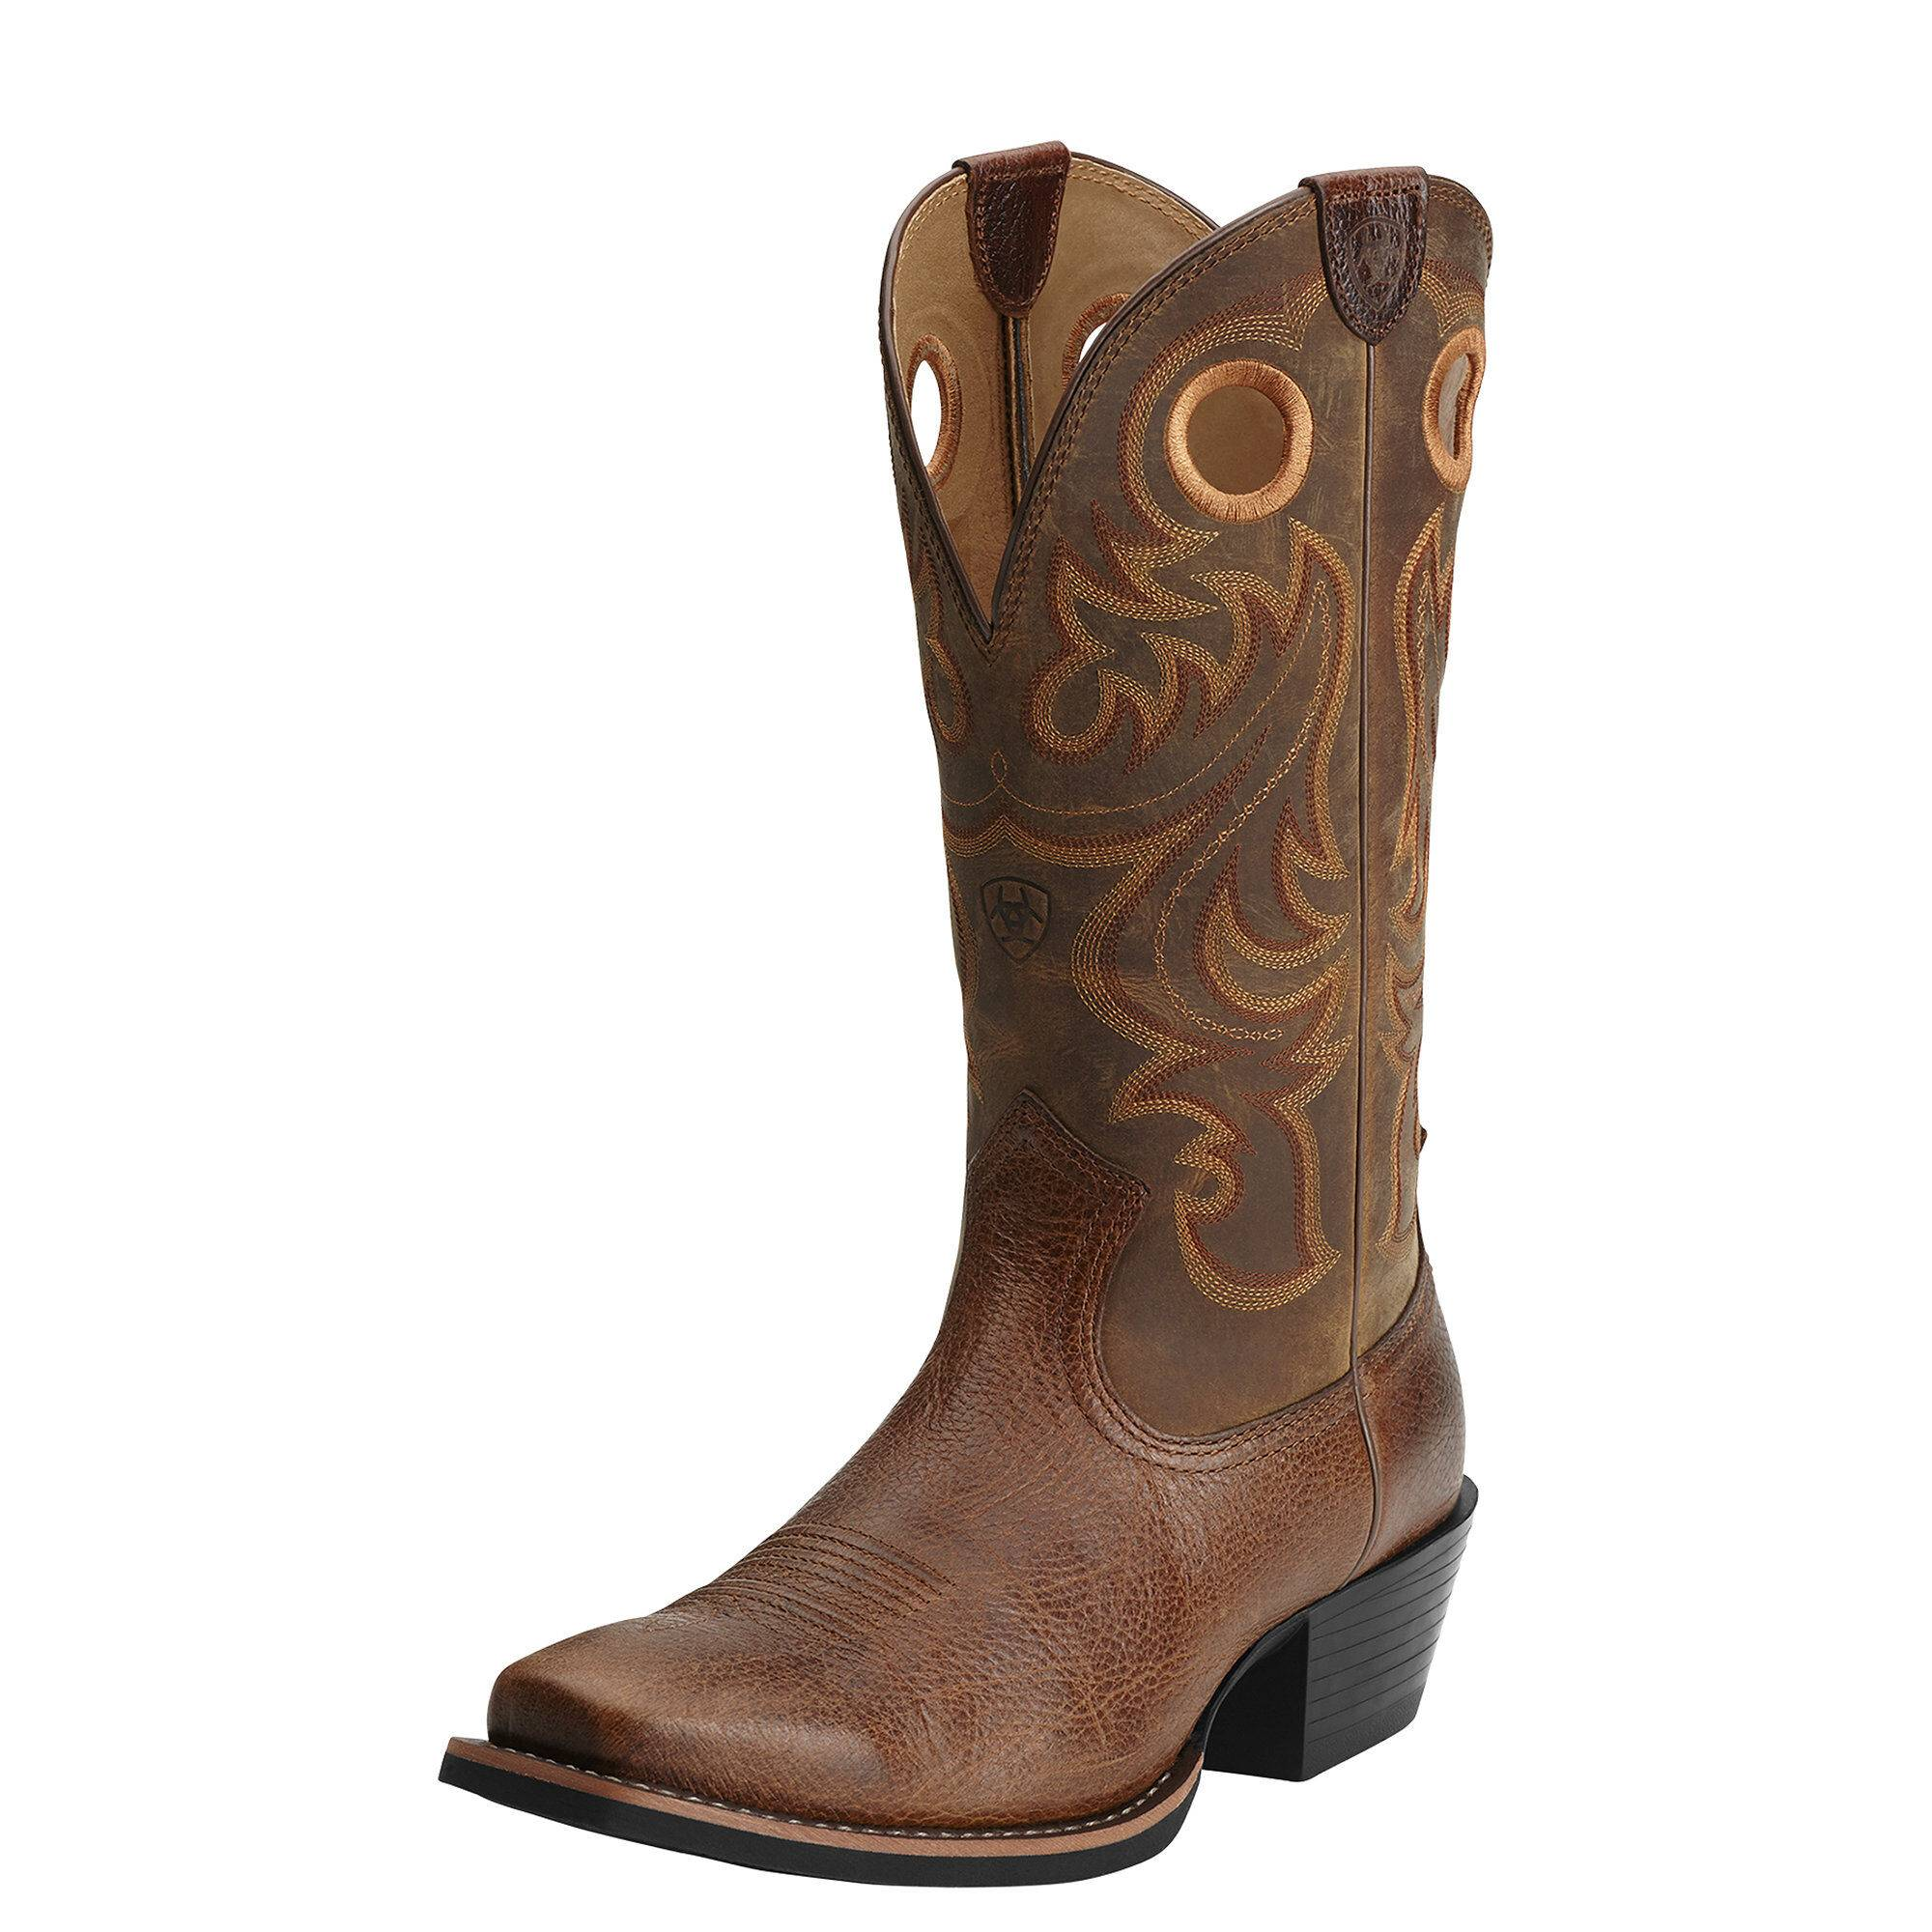 Ariat Men's Sport Square Toe Western Boots in Fiddle Brown Leather, Size 10.5 D / Medium by Ariat